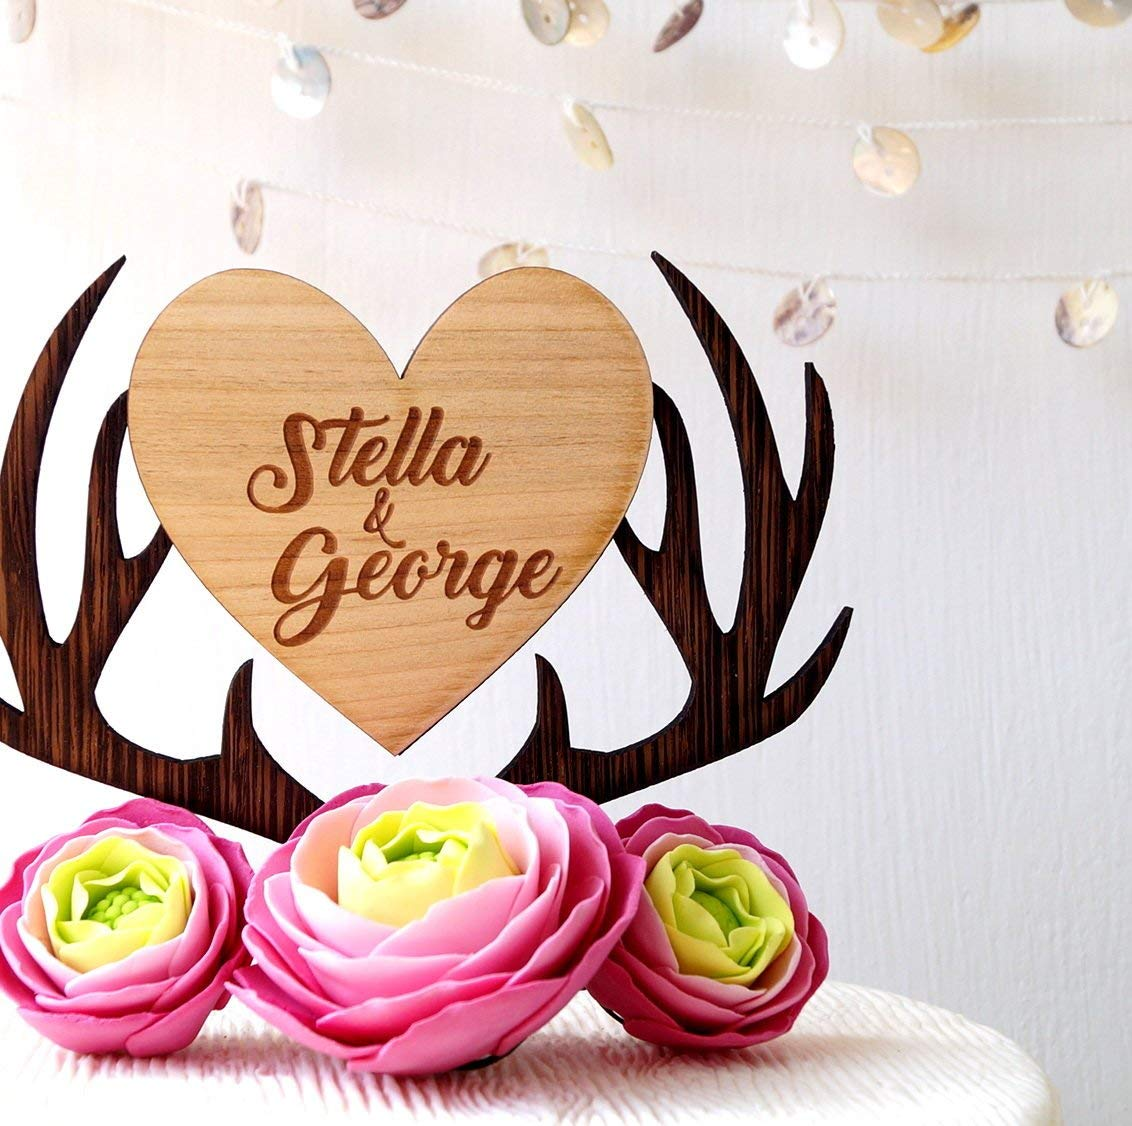 Personalized cake topper, deer antlers cake topper, custom cake topper, antlers heart topper, wooden rustic cake topper, names cake topper